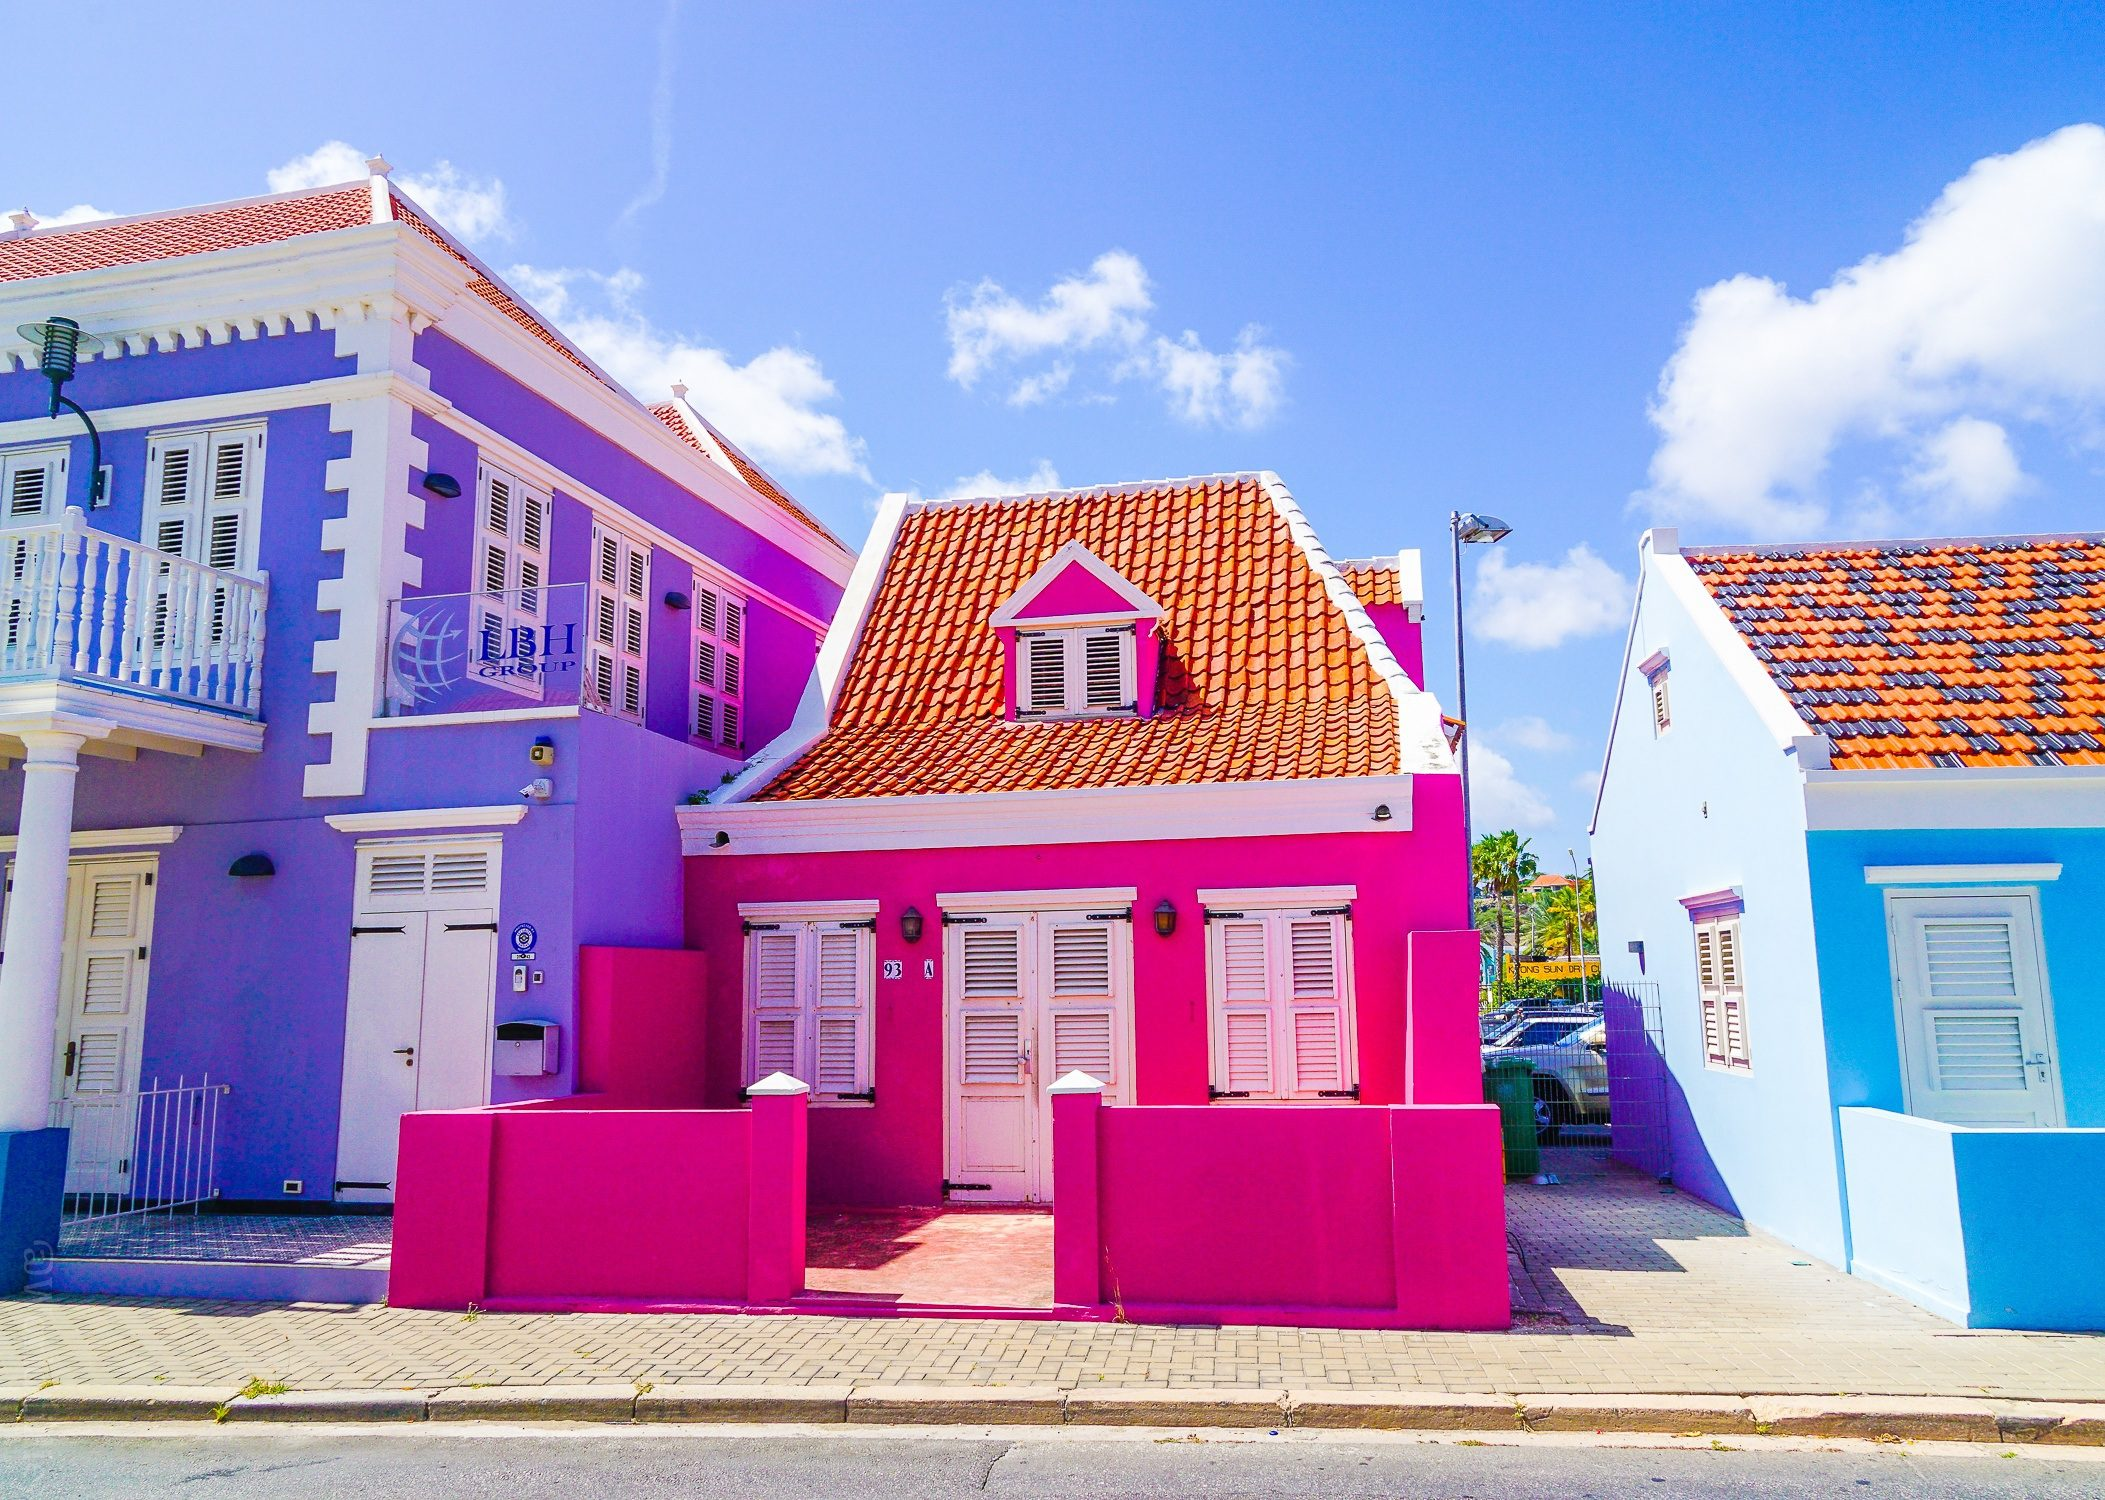 The paint colors of Willemstad are out of a dream.